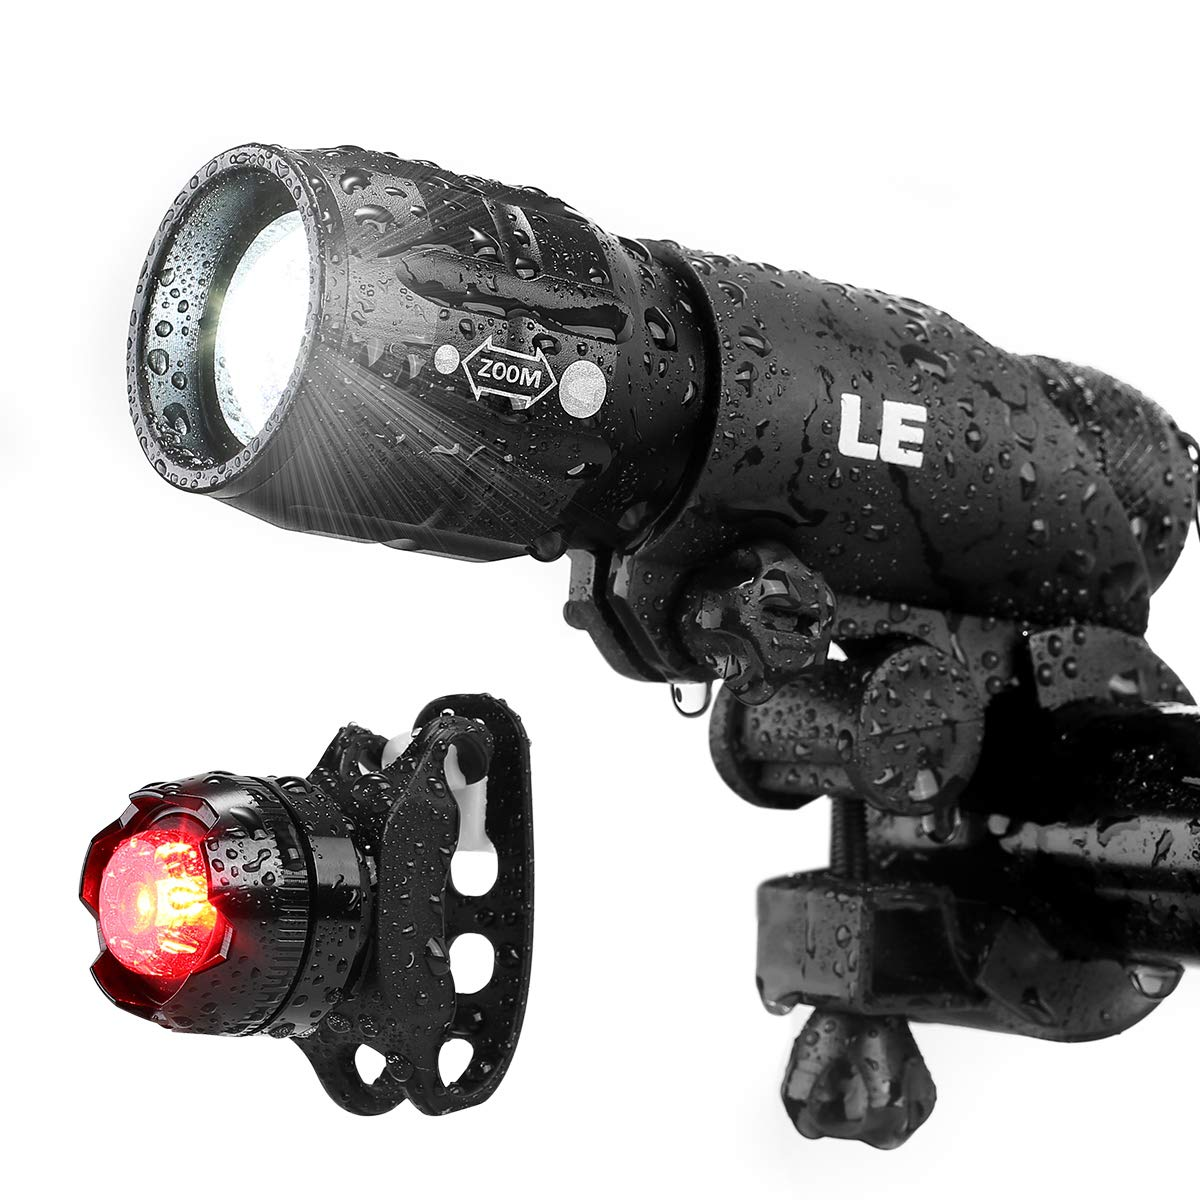 LE LED Bike Light Set, Zoomable Bicycle Headlight, Cycling Taillight, 200lm, 3 Lighting Modes, Front Rear Light Set, AAA Batteries Included